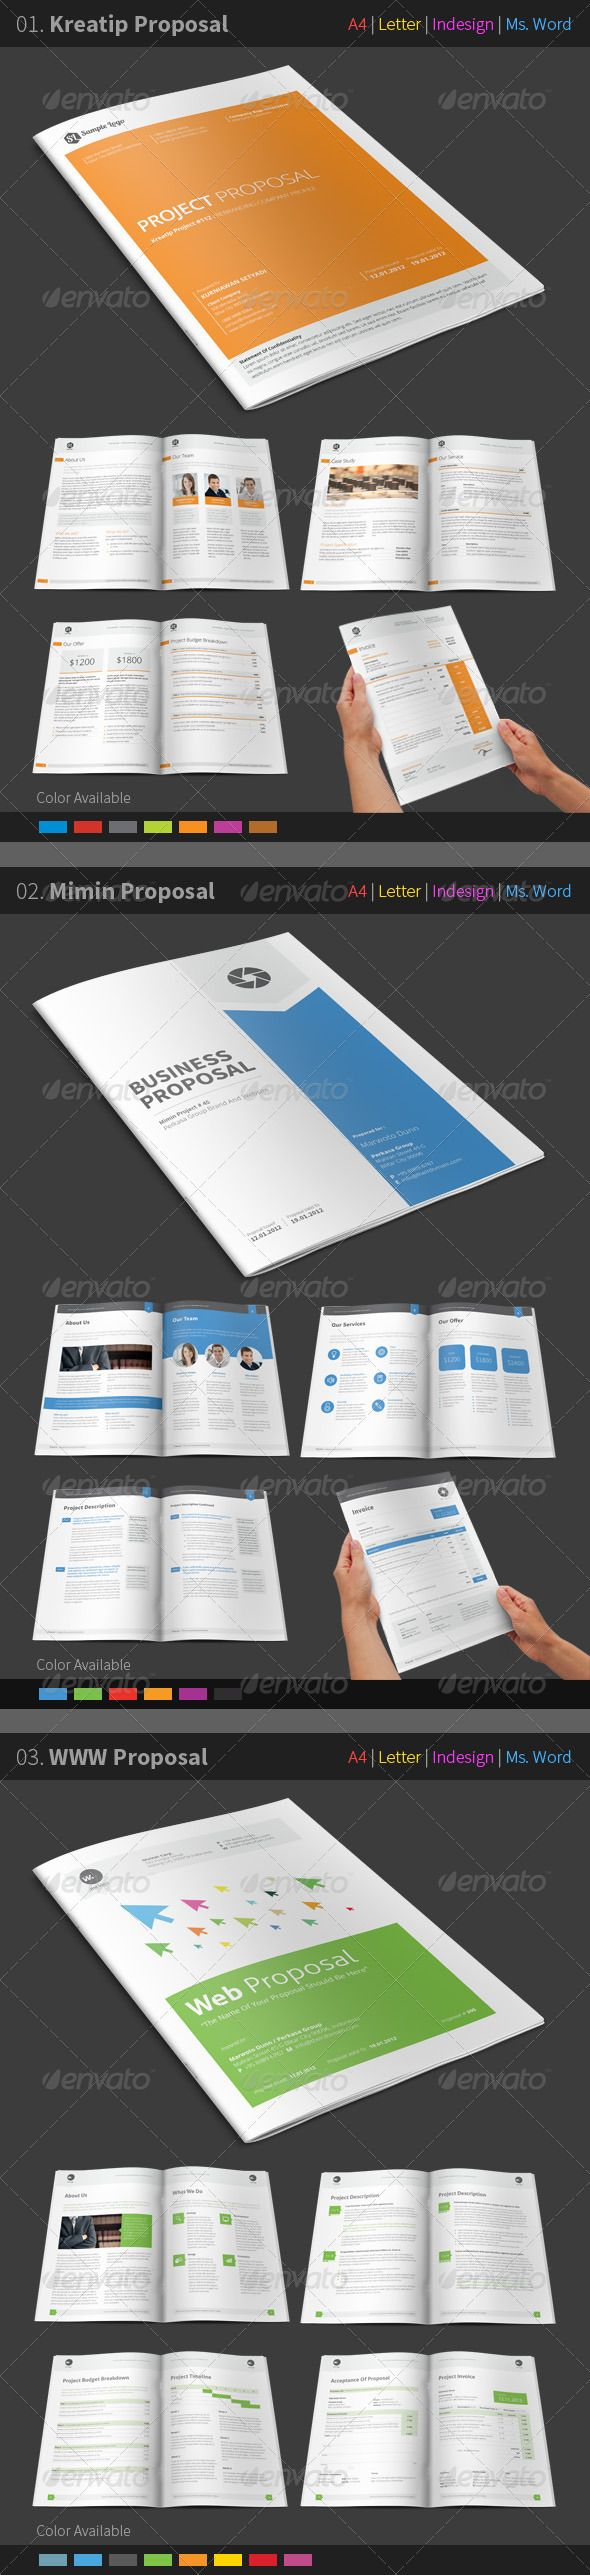 how to create a proposal template in word%0A Proposal Bundle